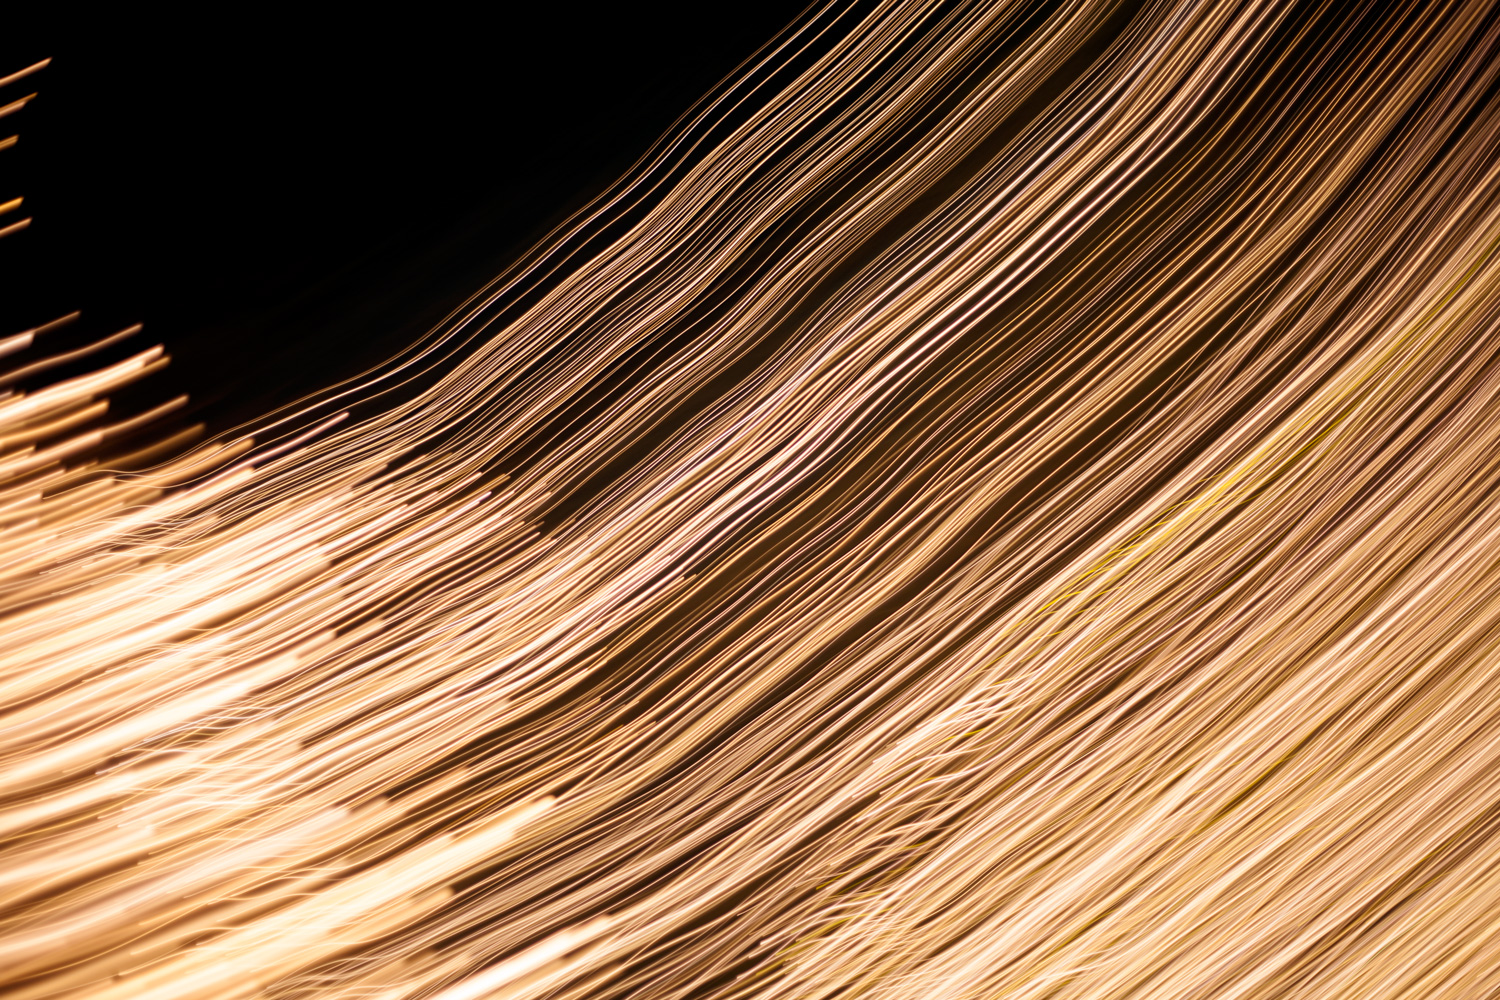 Get Moving - Four Ways to Create Abstract Light Trail Photography